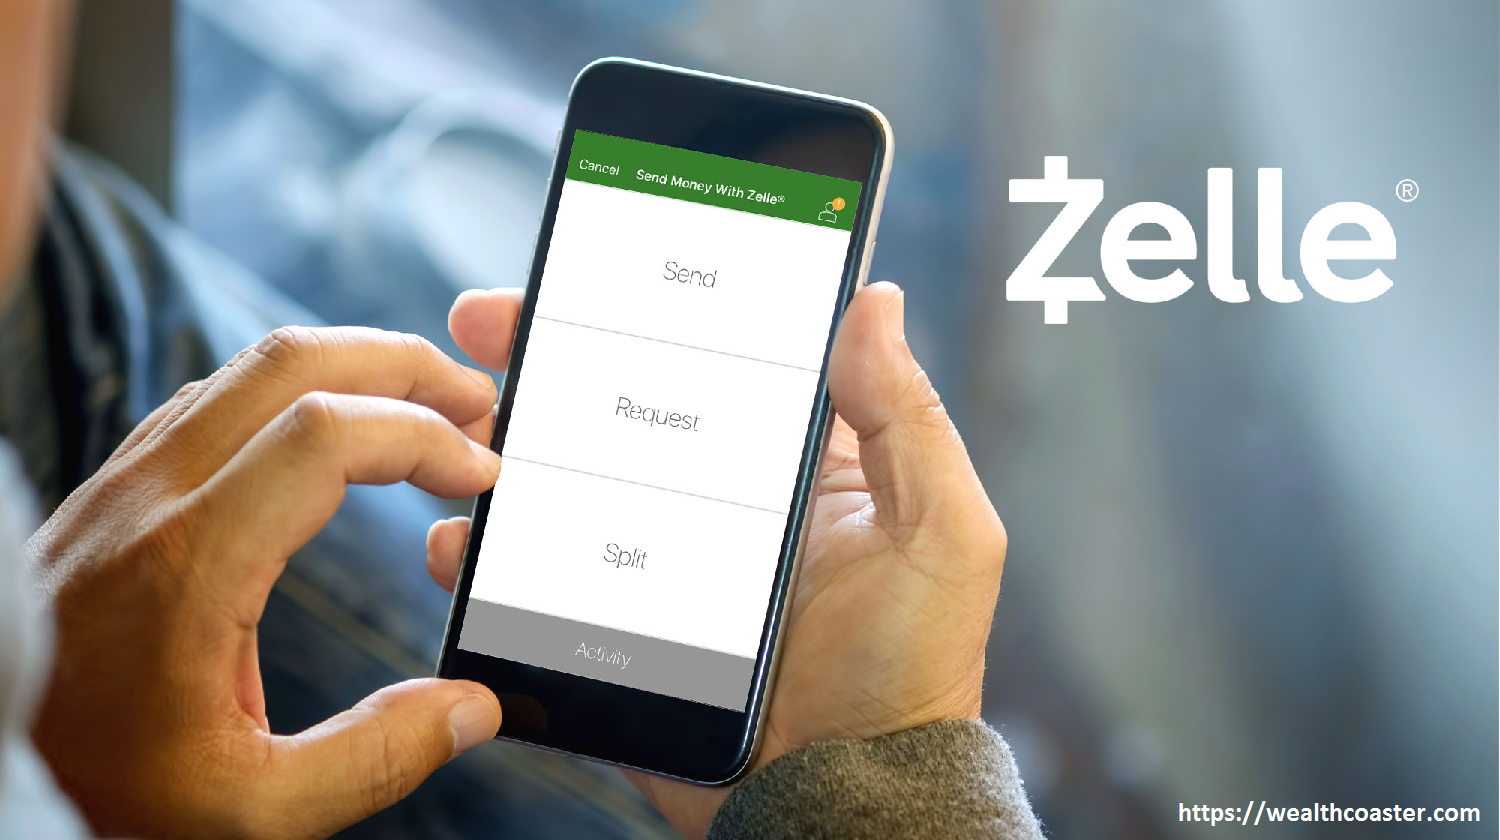 What Is The Zelle Transfer Limit?